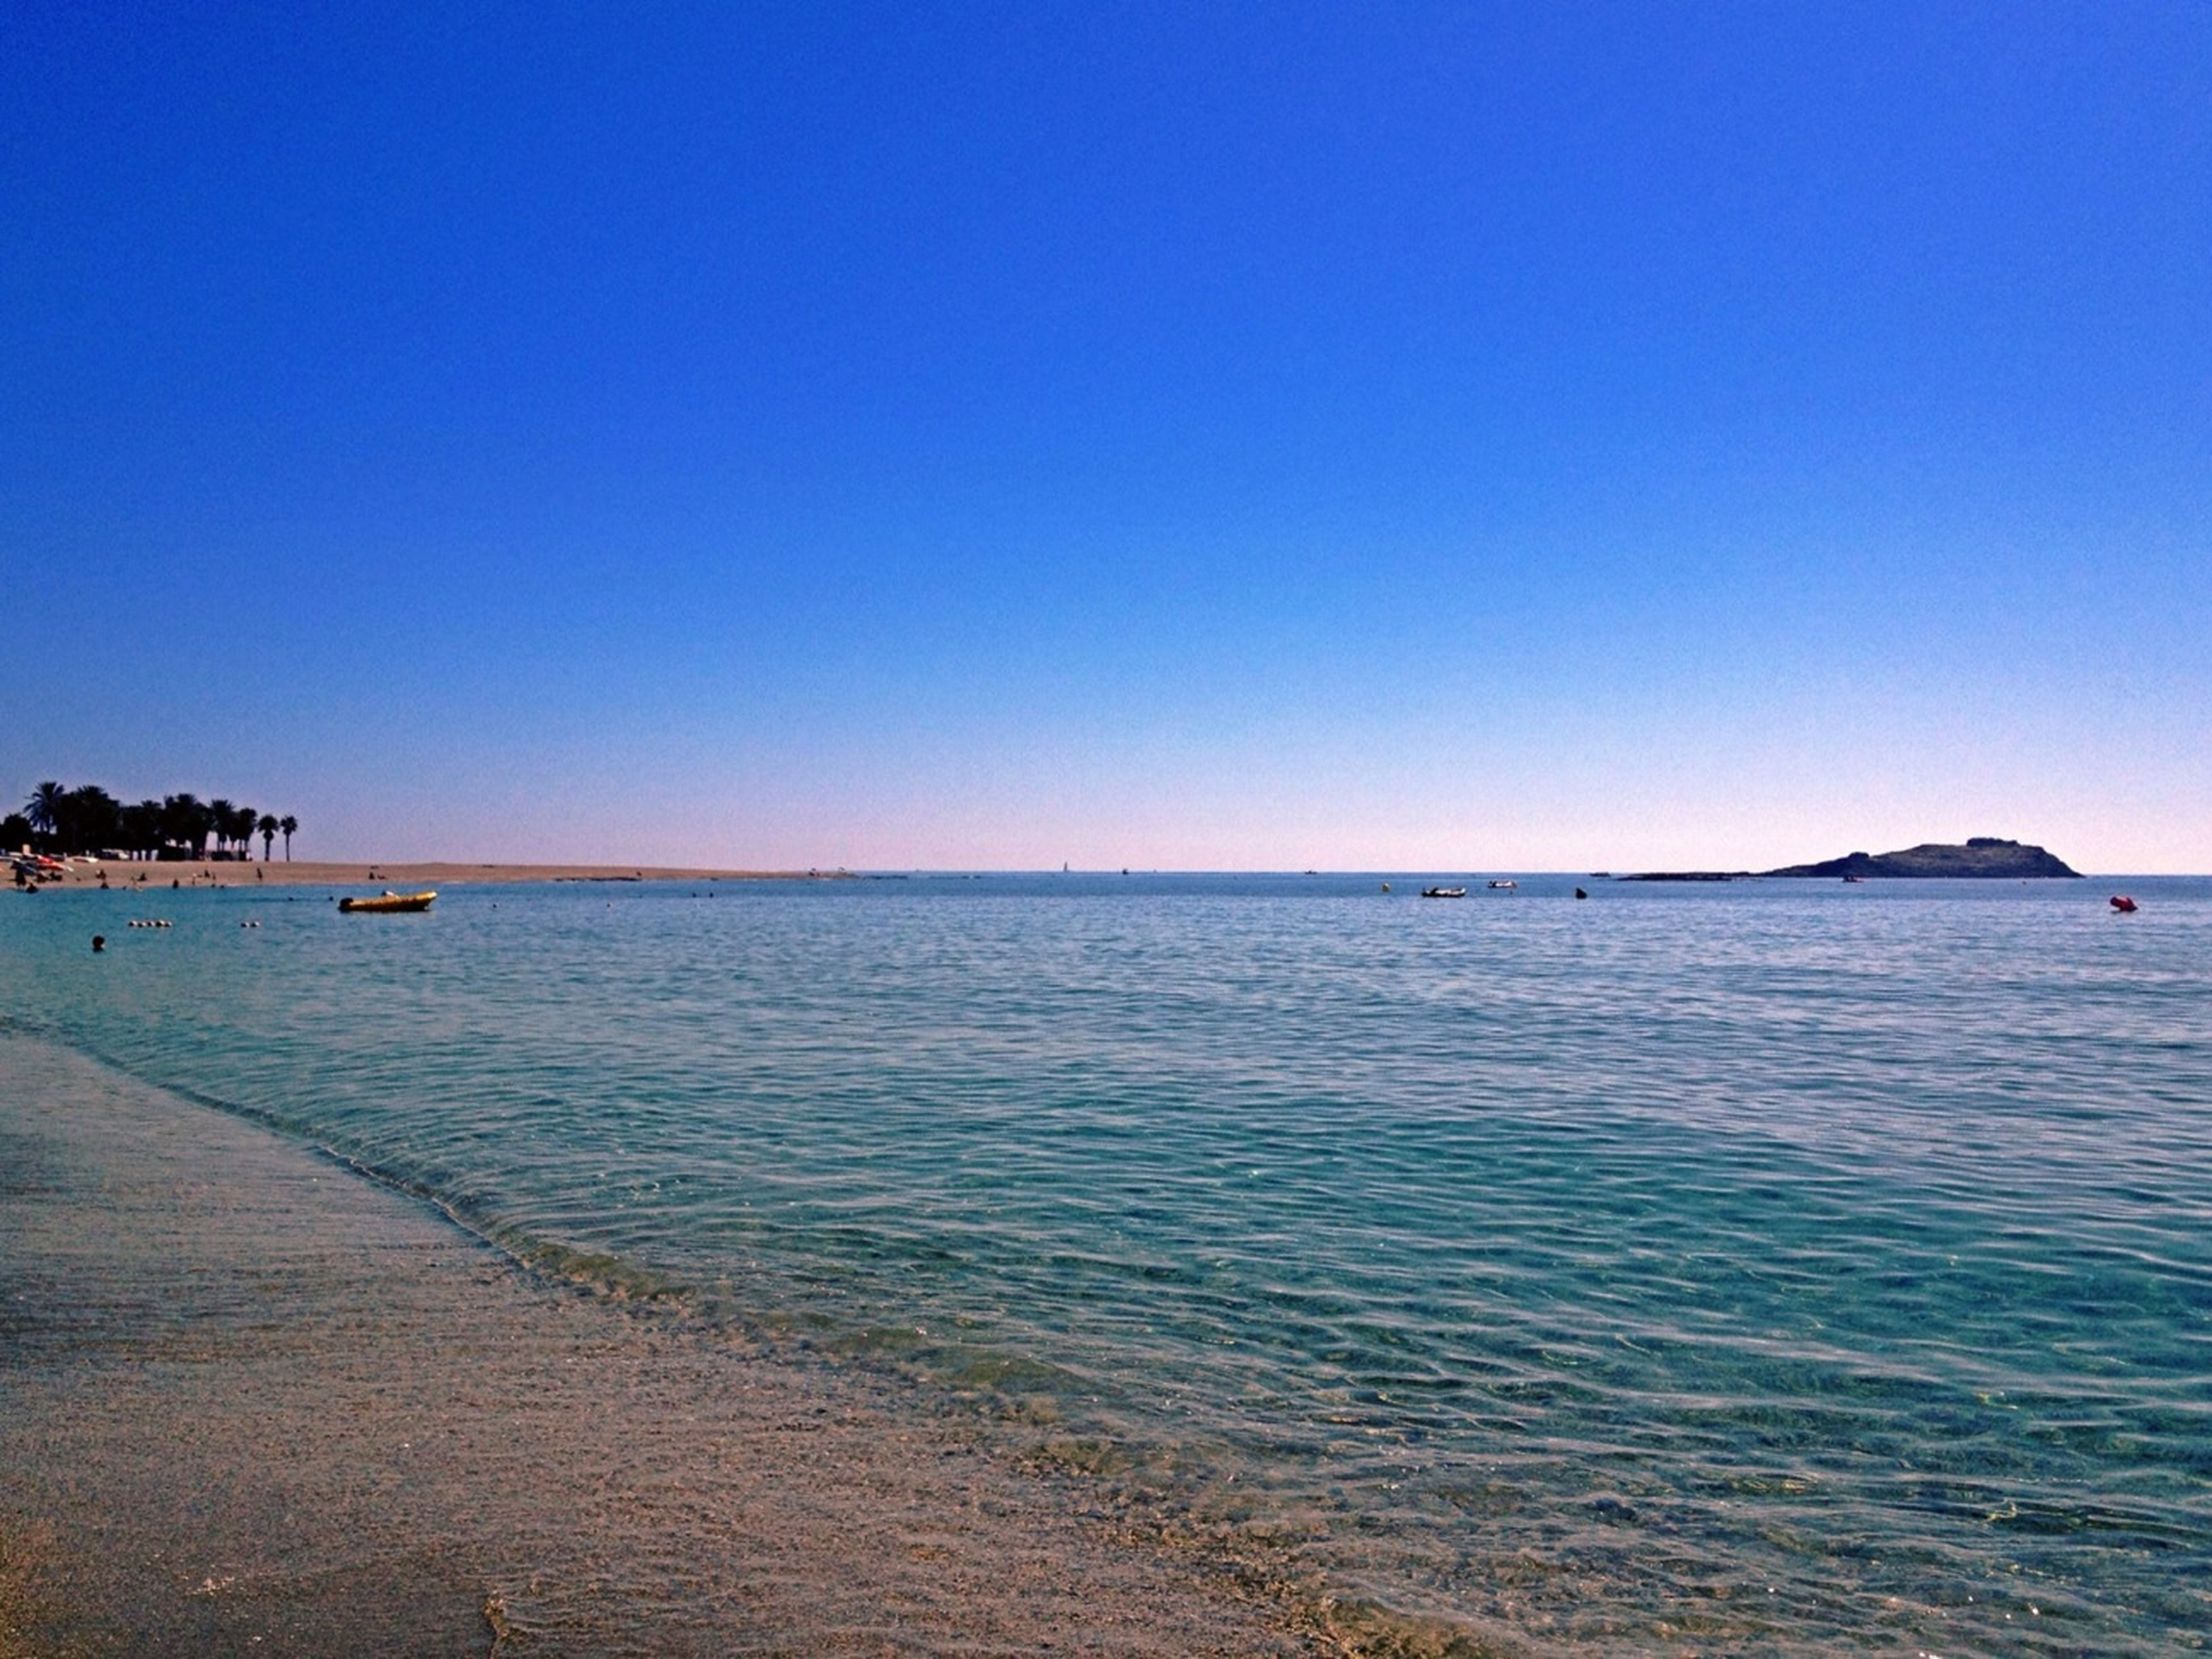 sea, water, clear sky, copy space, blue, tranquil scene, horizon over water, tranquility, scenics, beach, beauty in nature, nature, idyllic, shore, rippled, incidental people, waterfront, coastline, seascape, outdoors